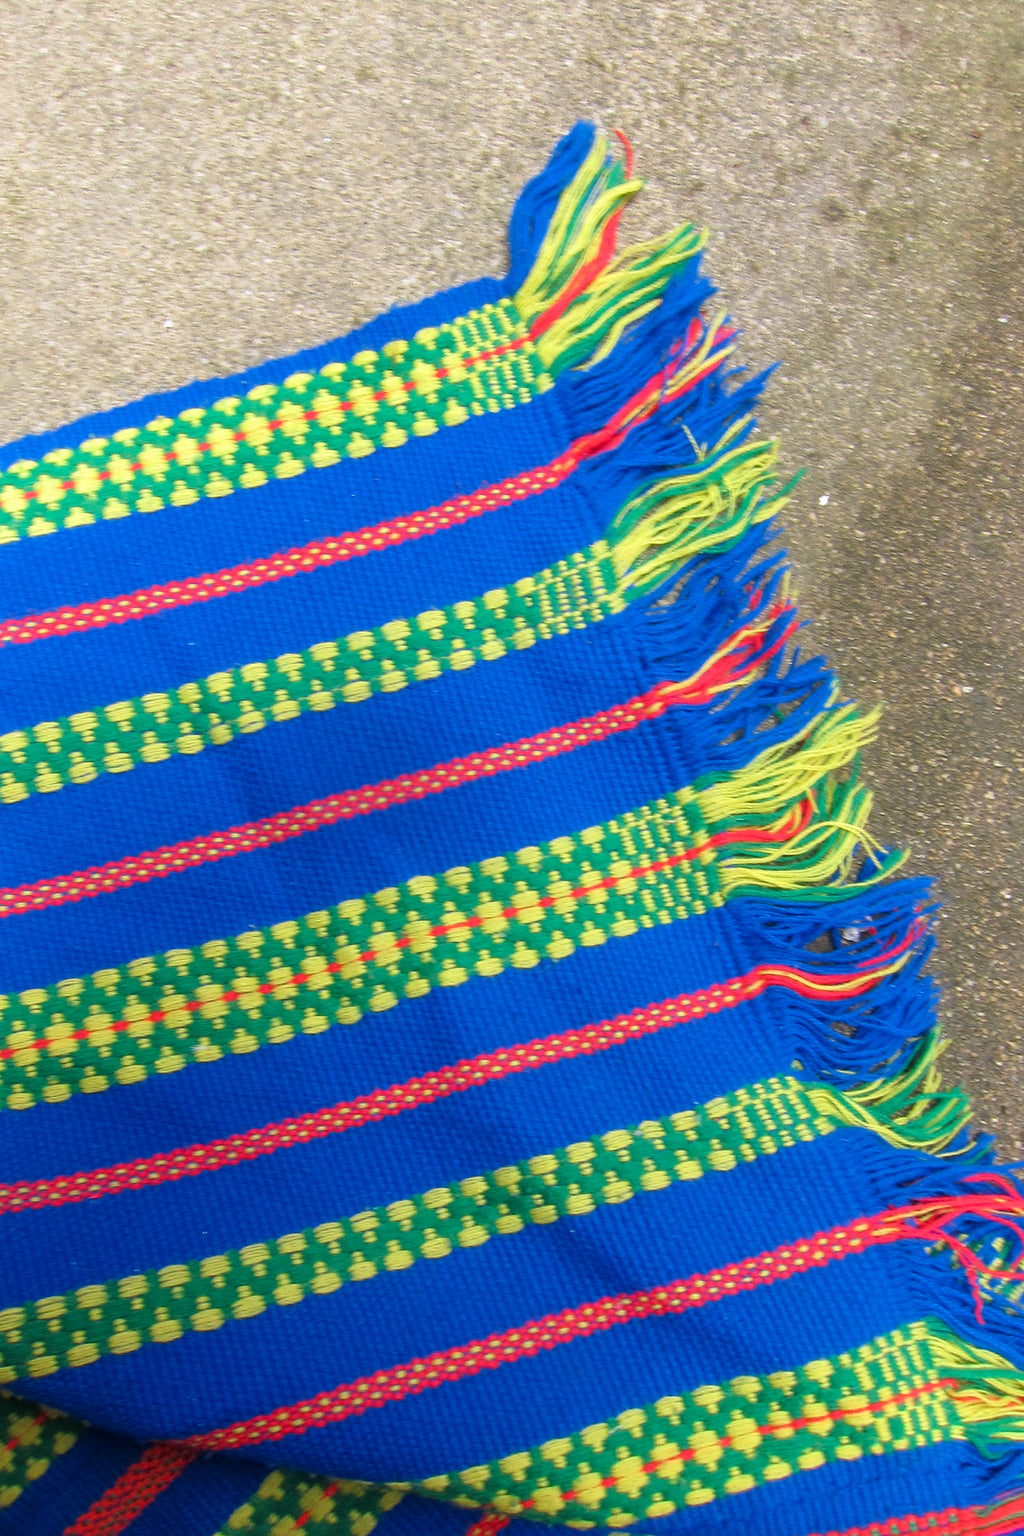 vintage blue and neon green blanket